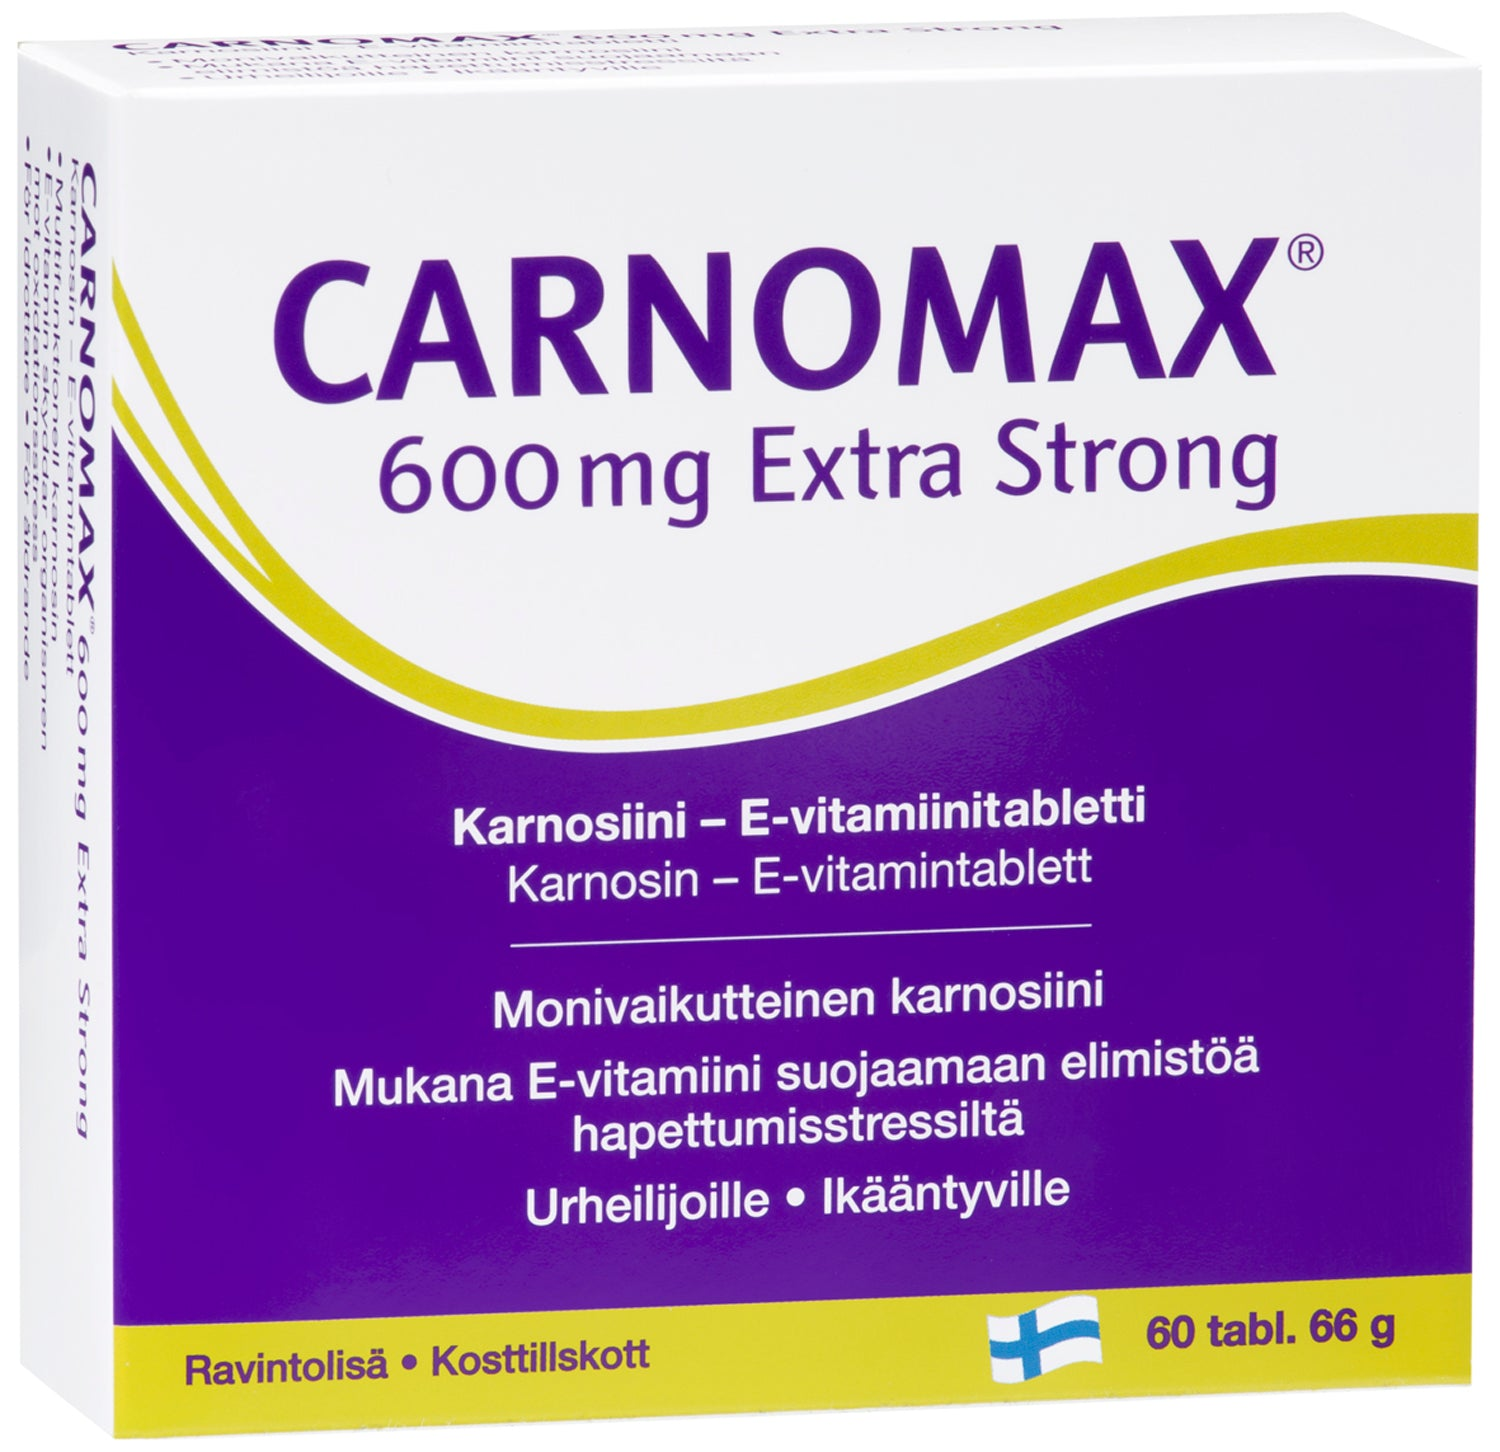 Carnomax 600 mg Extra Strong 60 tablettia